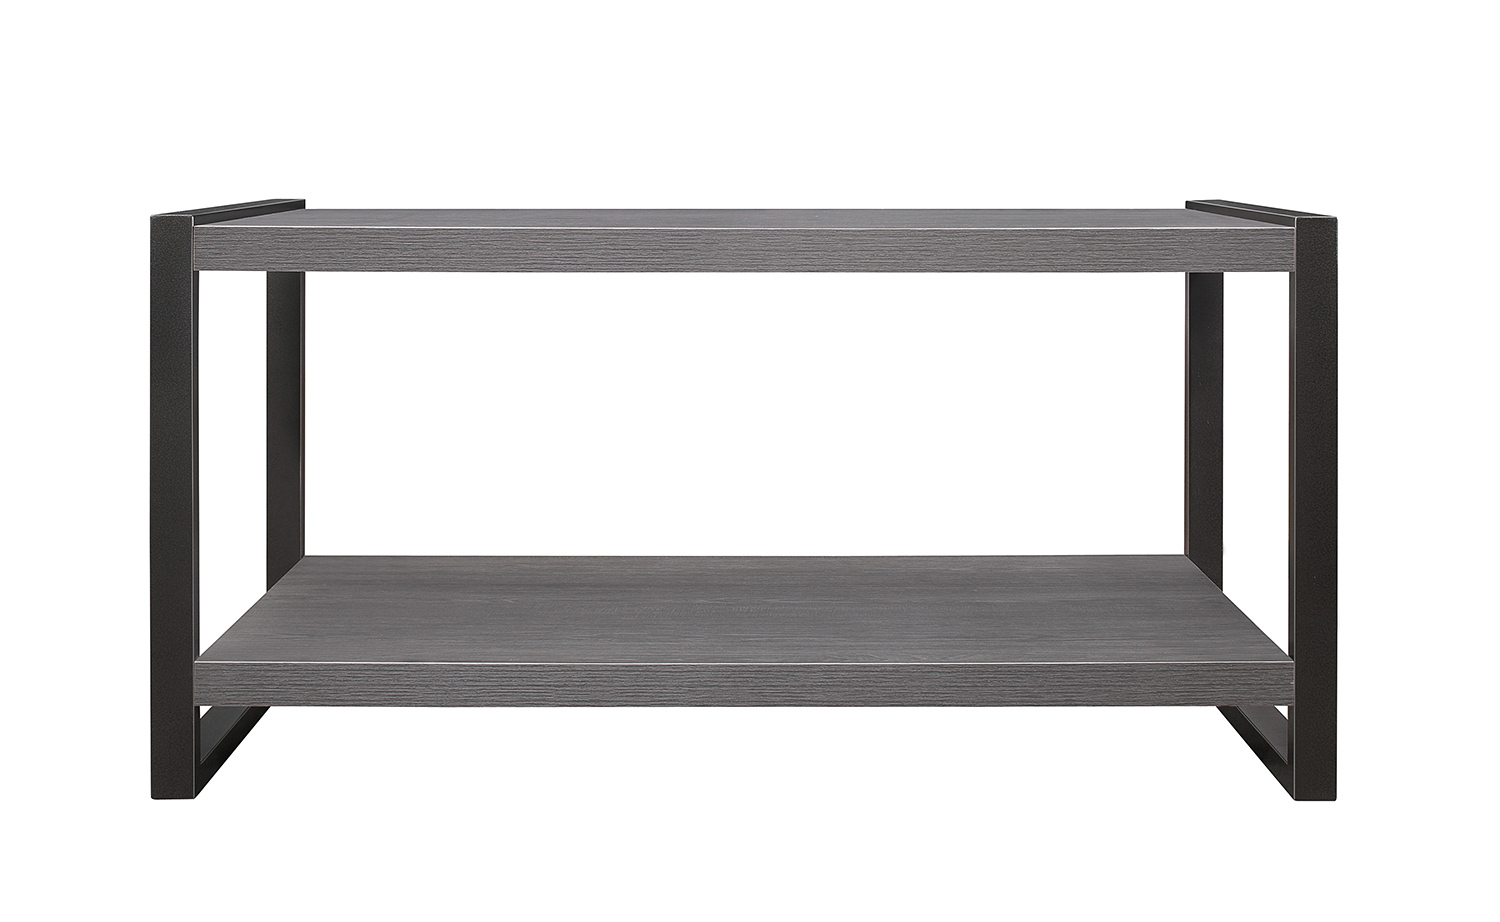 Homelegance Dogue Cocktail/Coffee Table - Gunmetal Gray